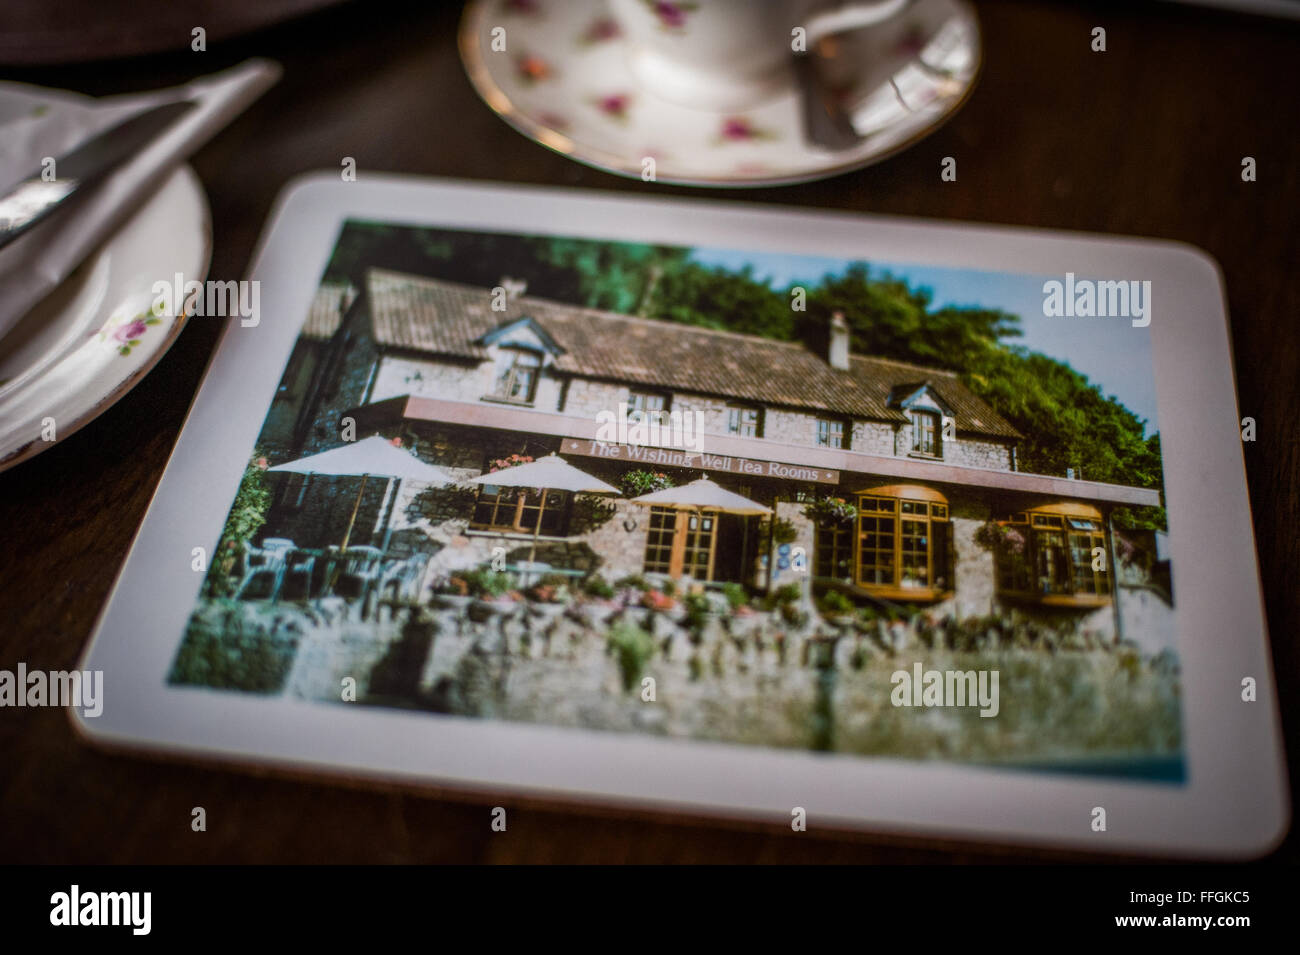 Quaint table/ place mat of tearoom in Cheddar, England - Stock Image